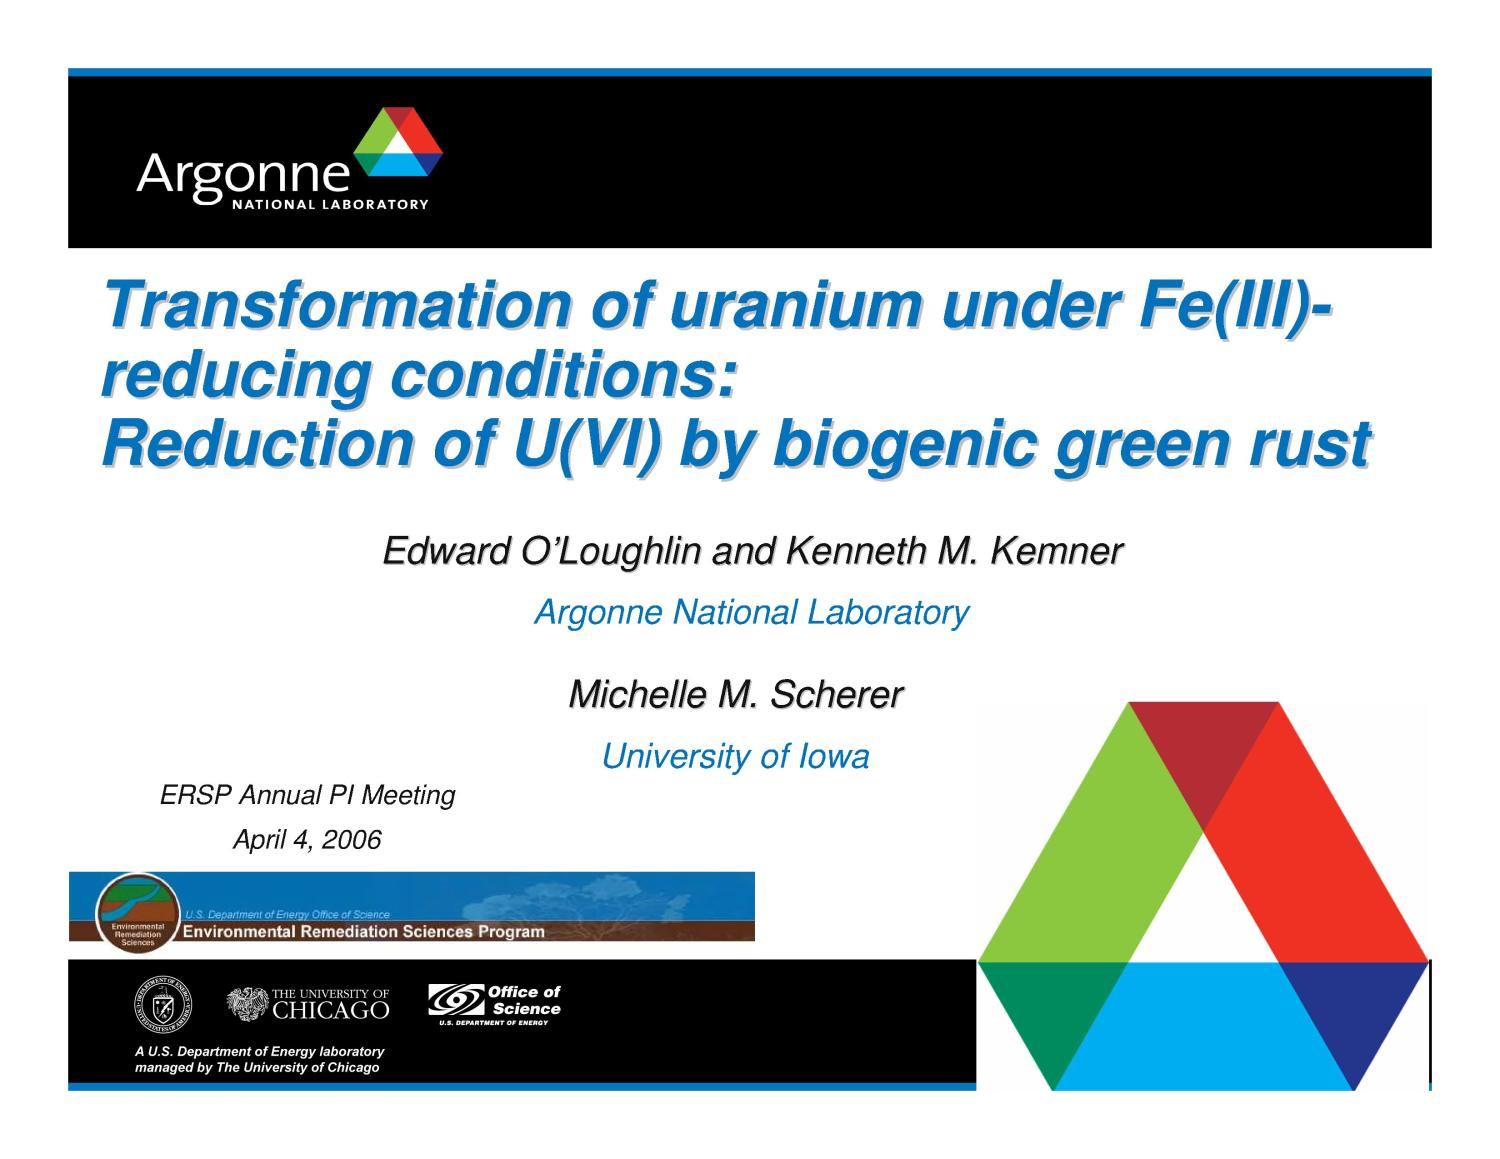 Transformation of uranium under Fe(III)-reducing conditions: Reduction of U(VI) by biogenic green rust                                                                                                      [Sequence #]: 1 of 19